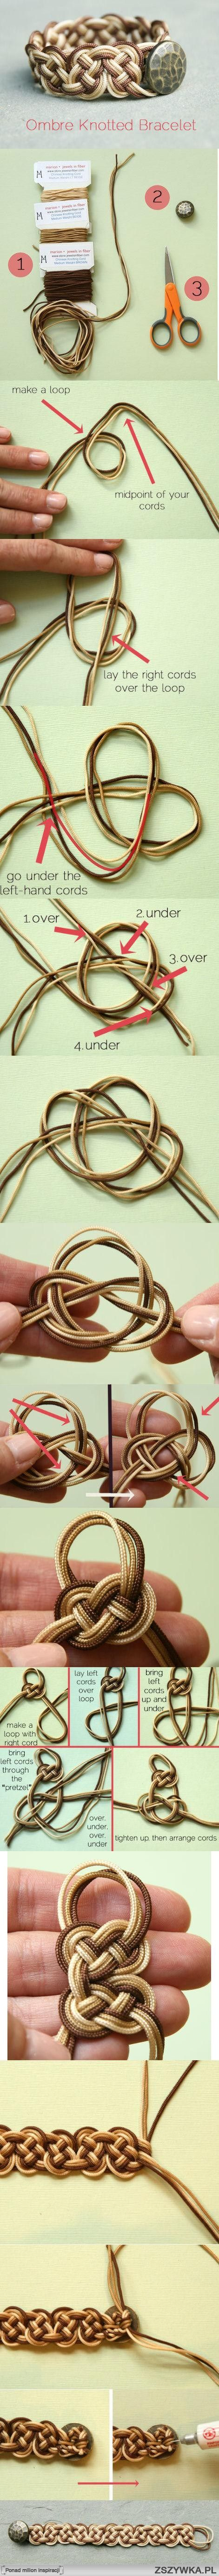 ombre celtic knot bracelet | We Know How To Do It